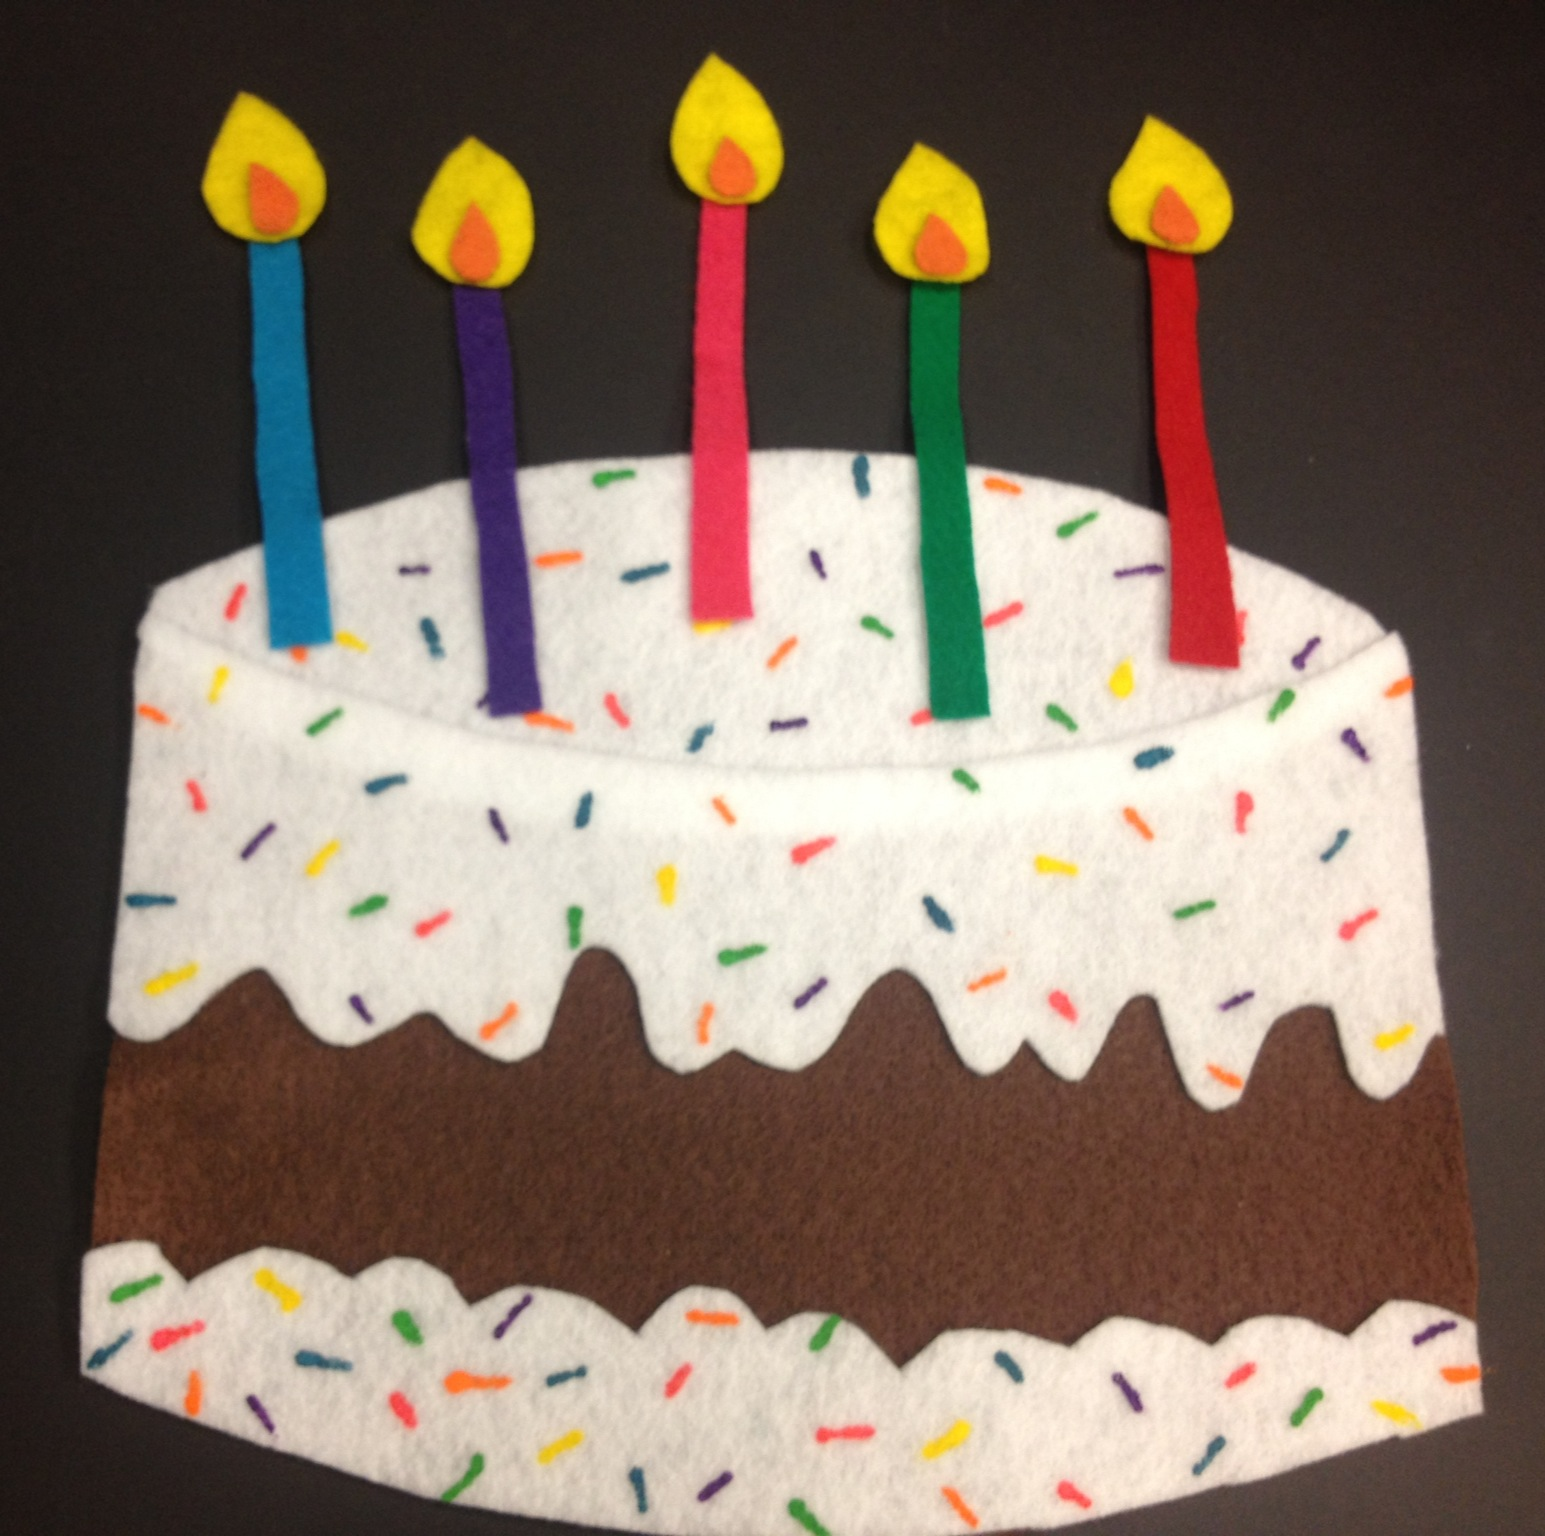 Cupcake and birthday cake craft idea for kids : Crafts and ...